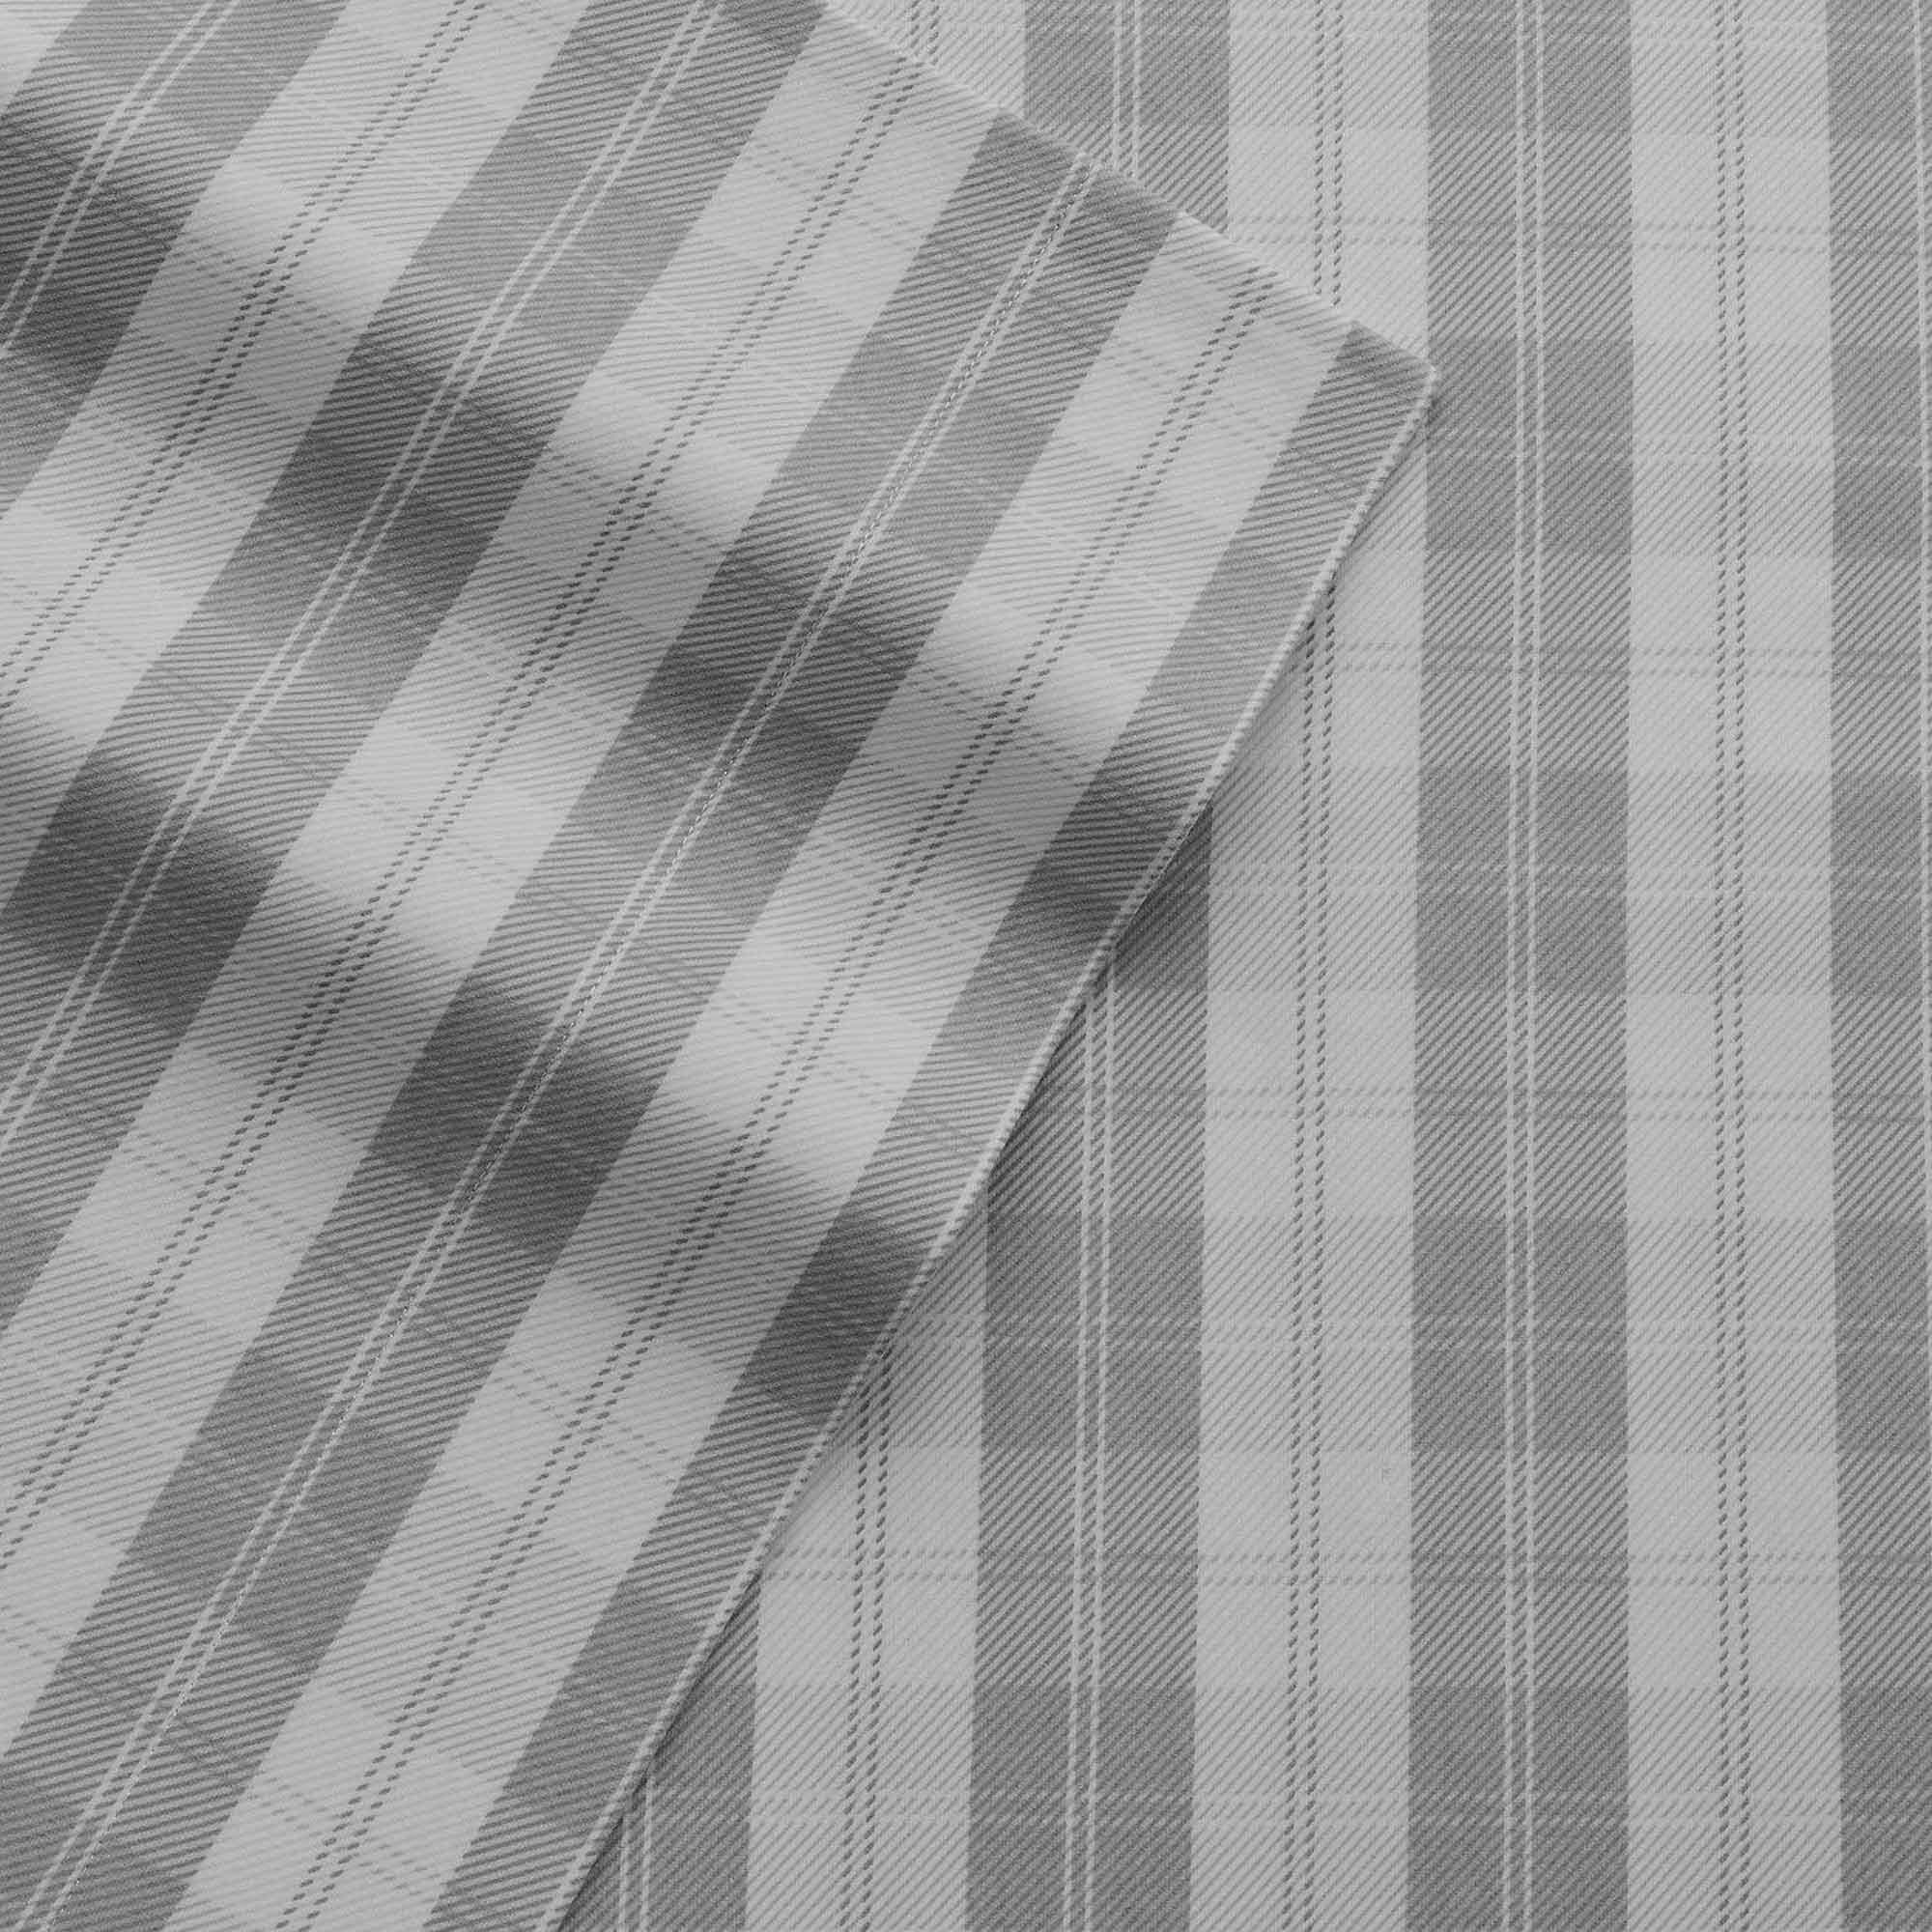 Cuddle Duds King Flannel Sheet Set - 100% Cotton Deep Poc...